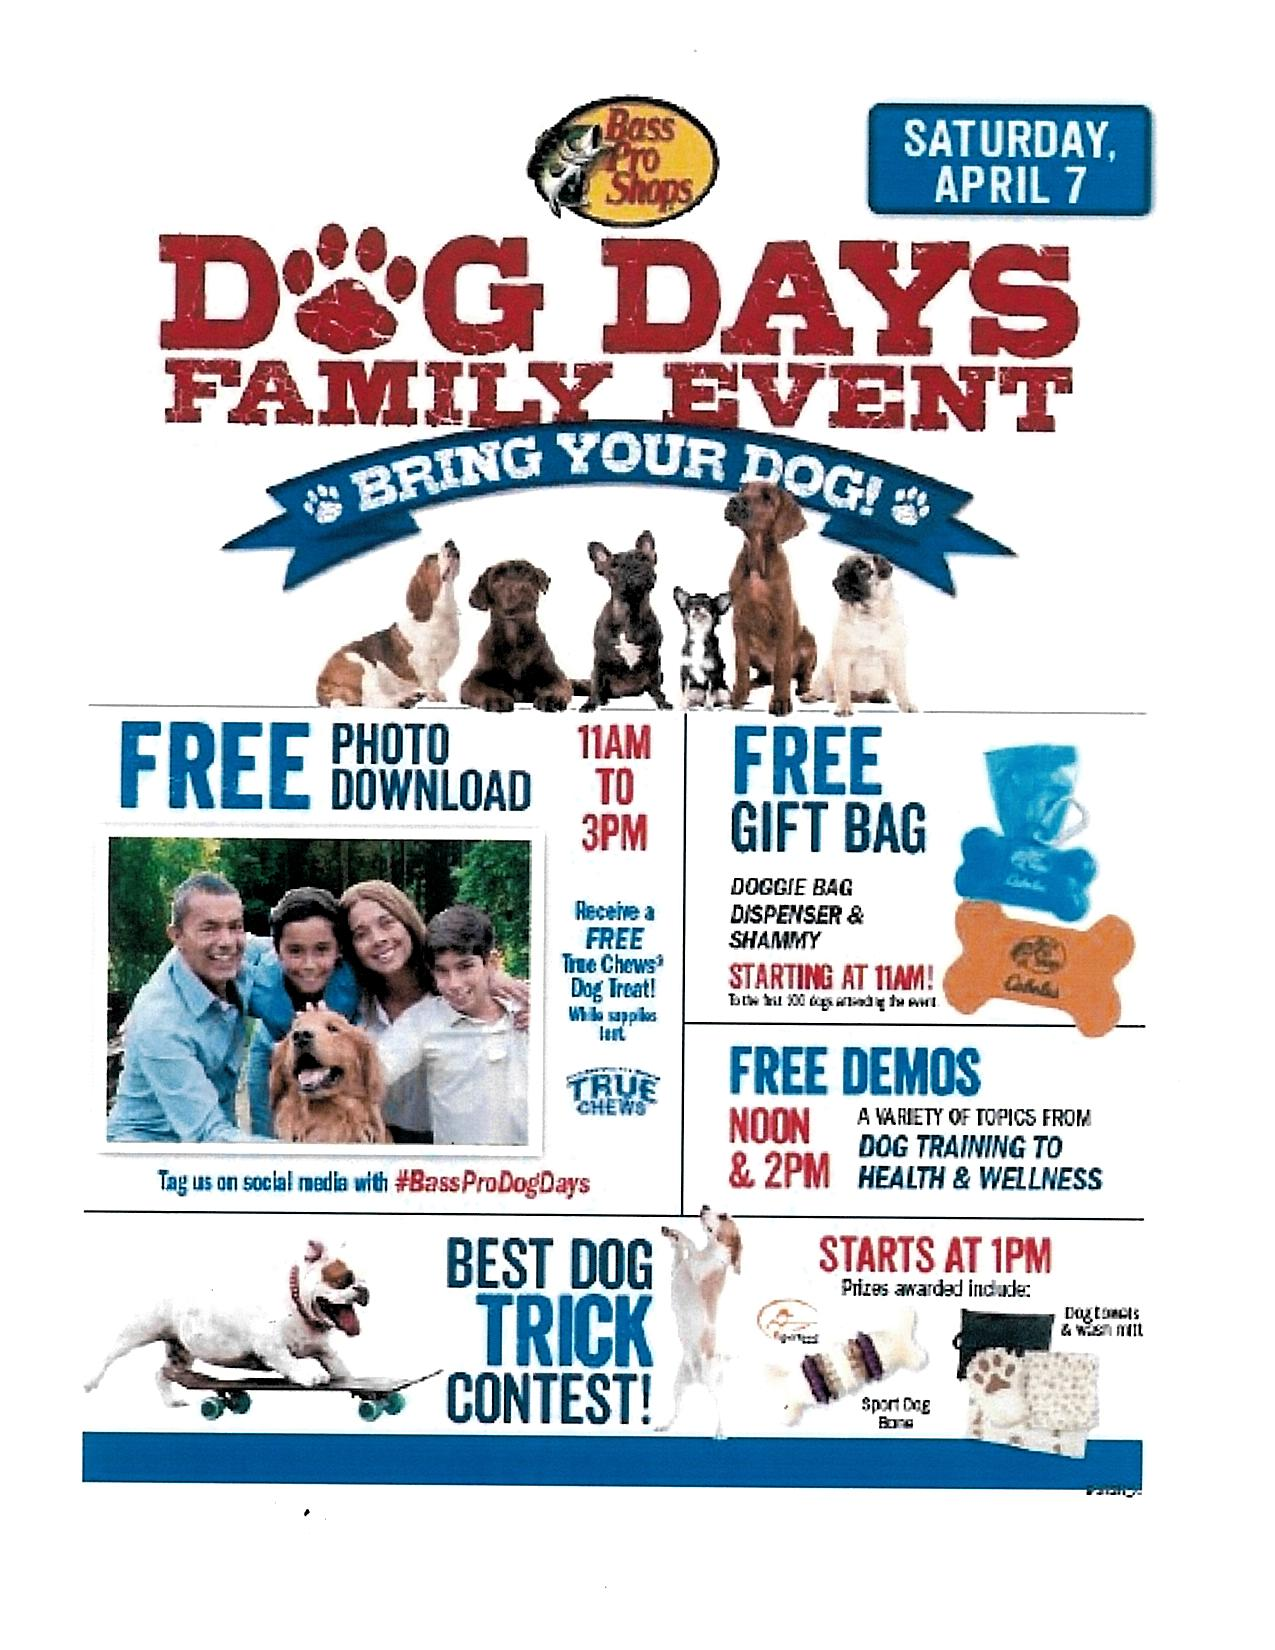 Dog Days Family Event at Bass Pro